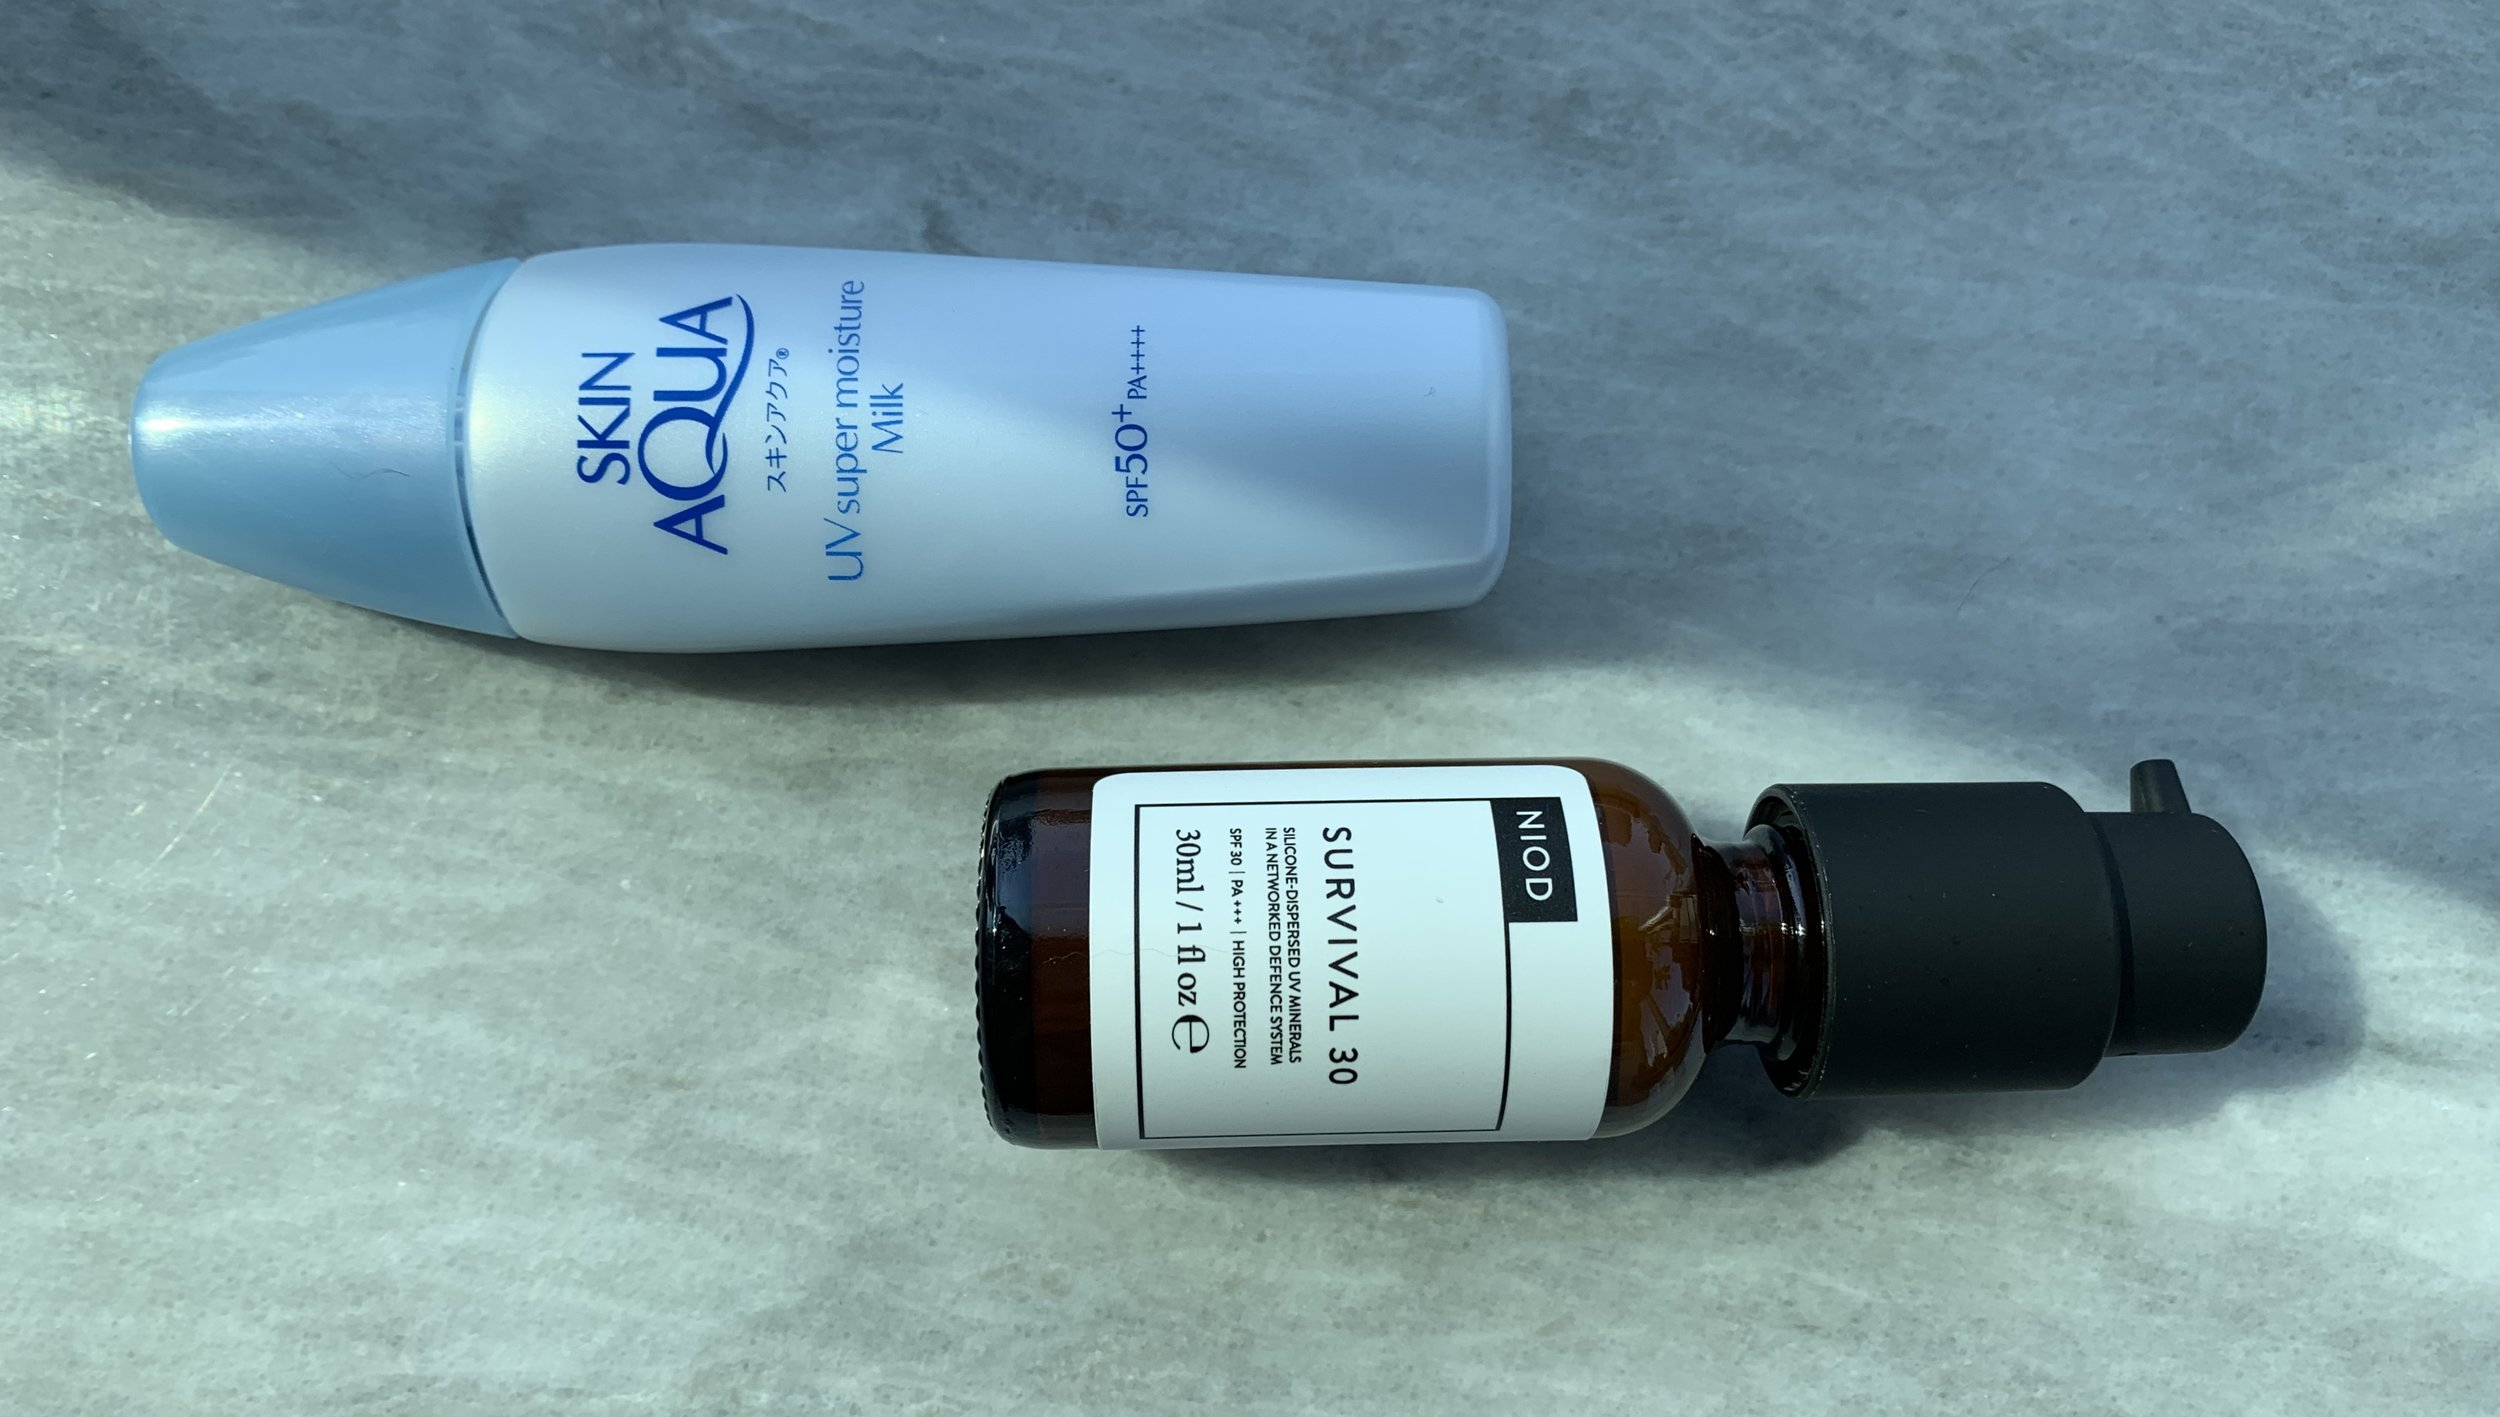 Two of my fave sunscreens, both boasting super lightweight textures that blend right in.